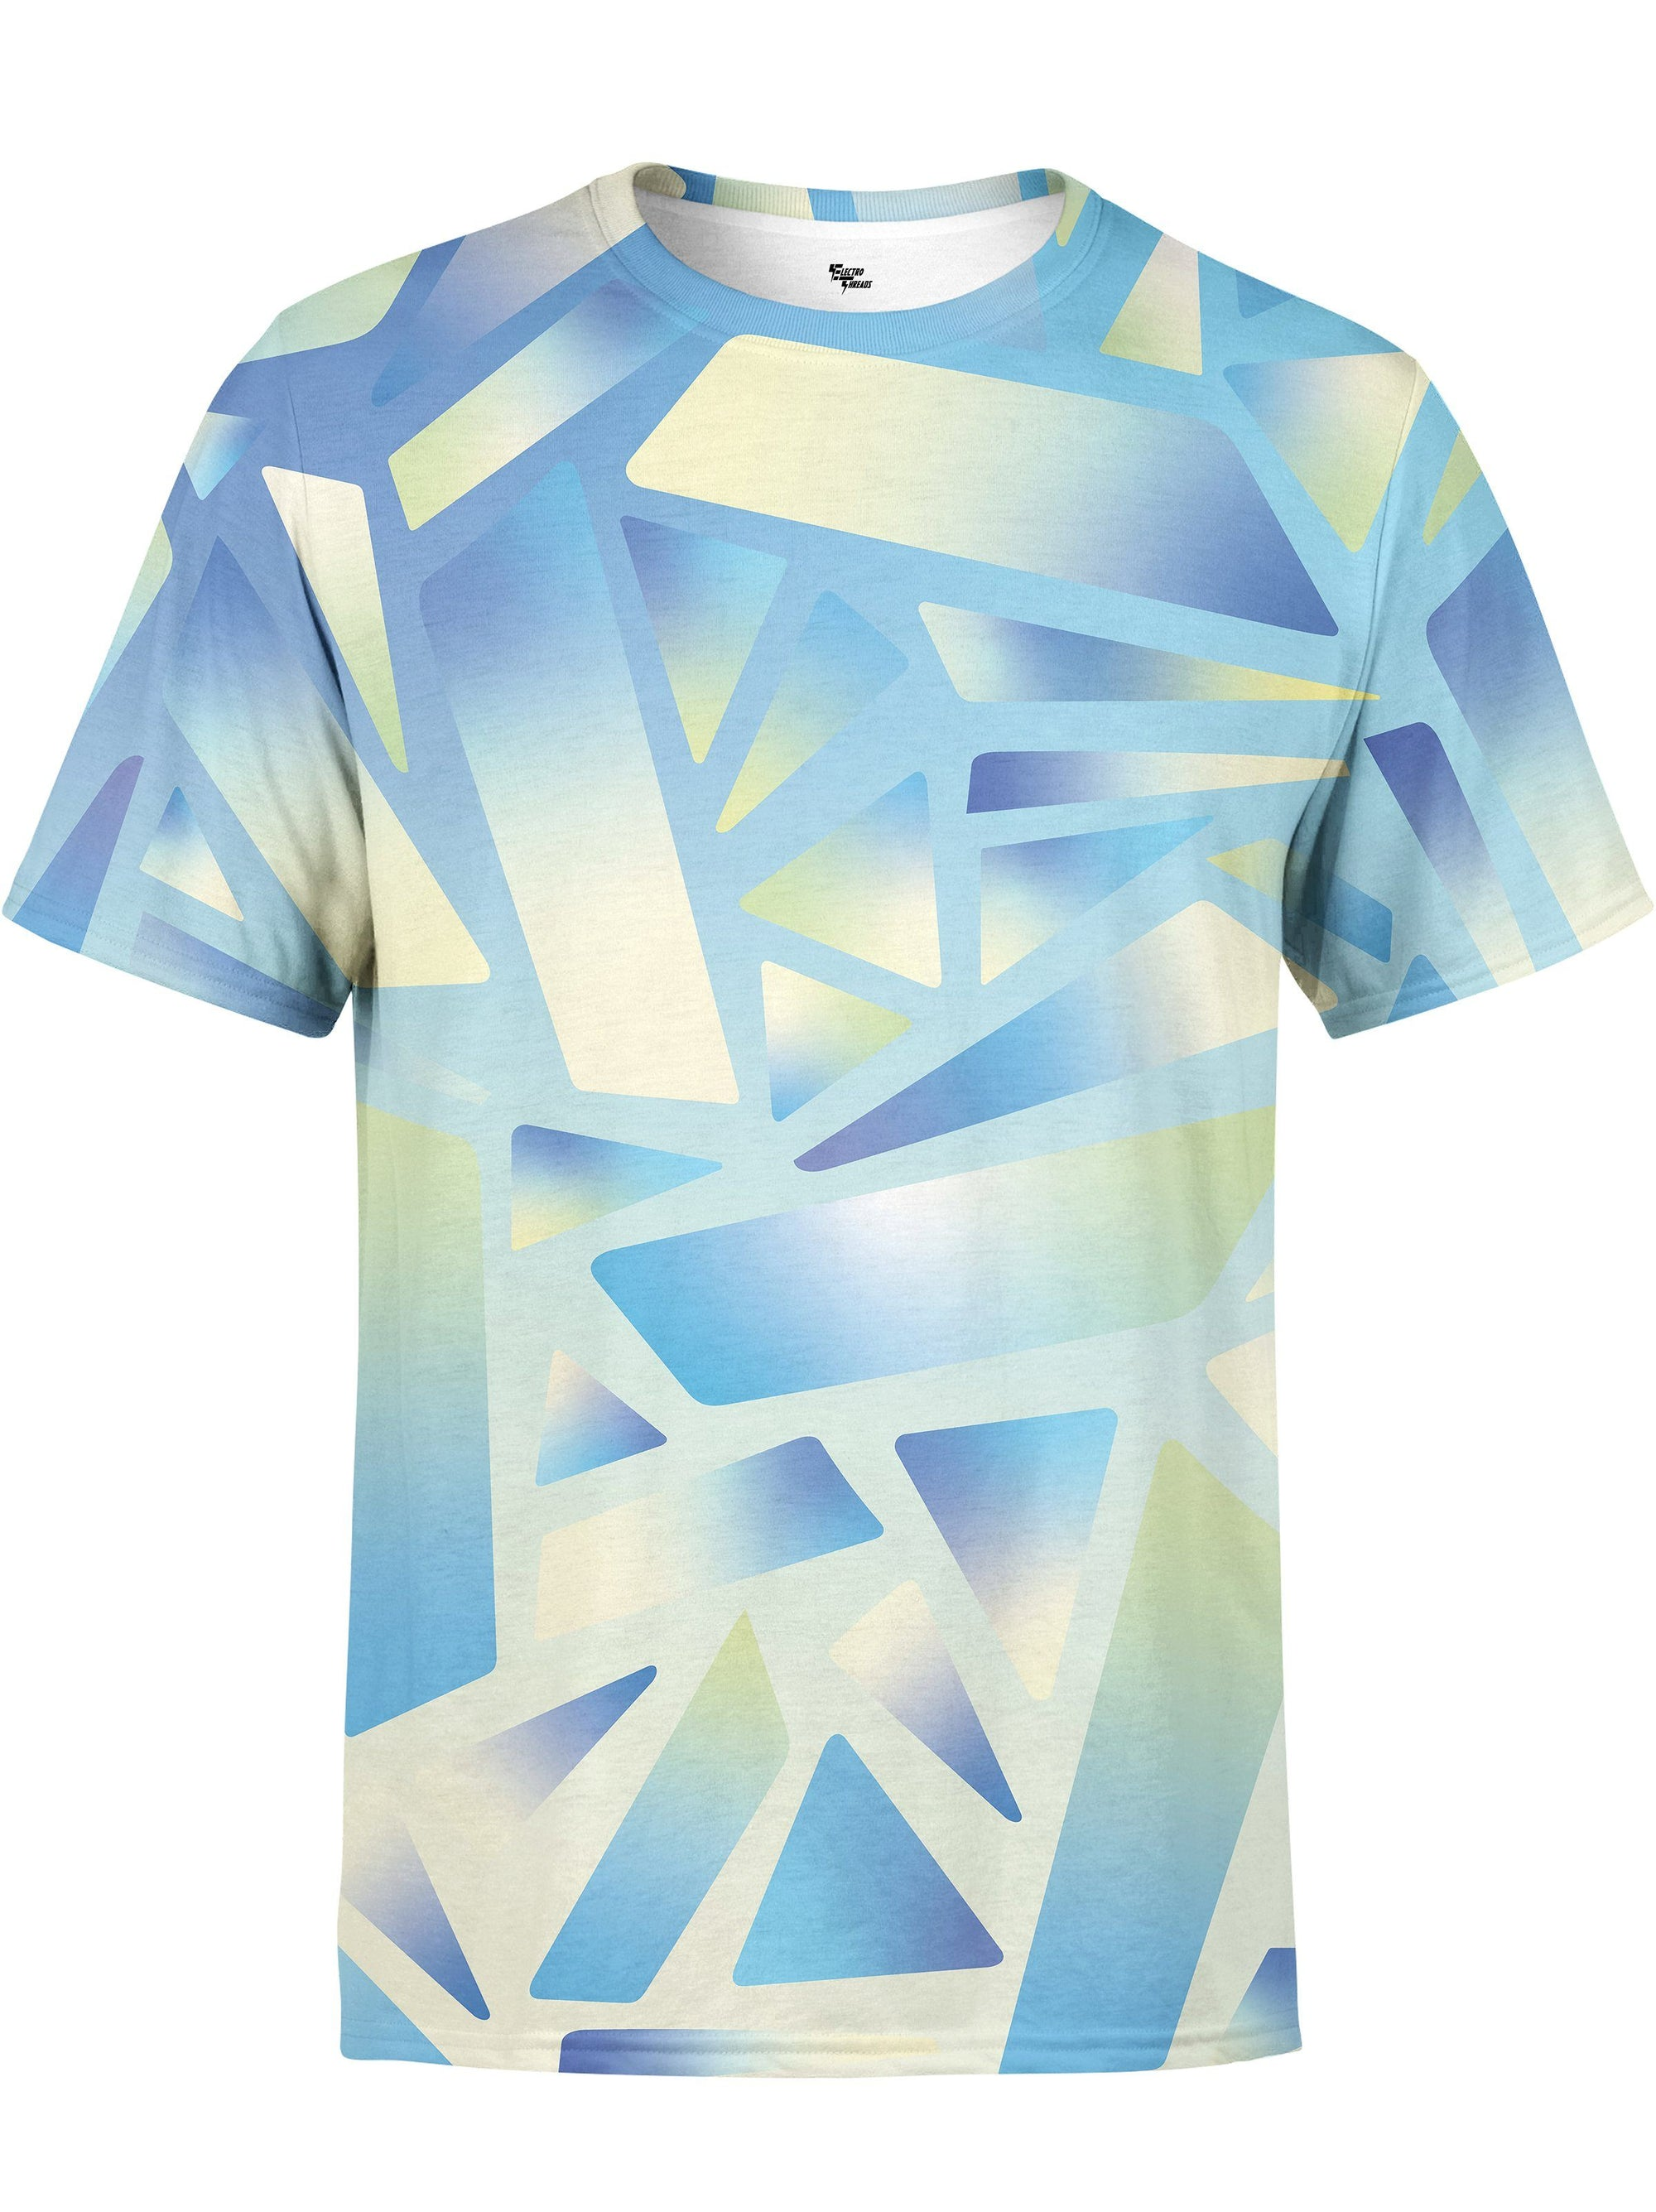 Electric Stain Glass (Blue Ice) Unisex Crew T-Shirts Electro Threads